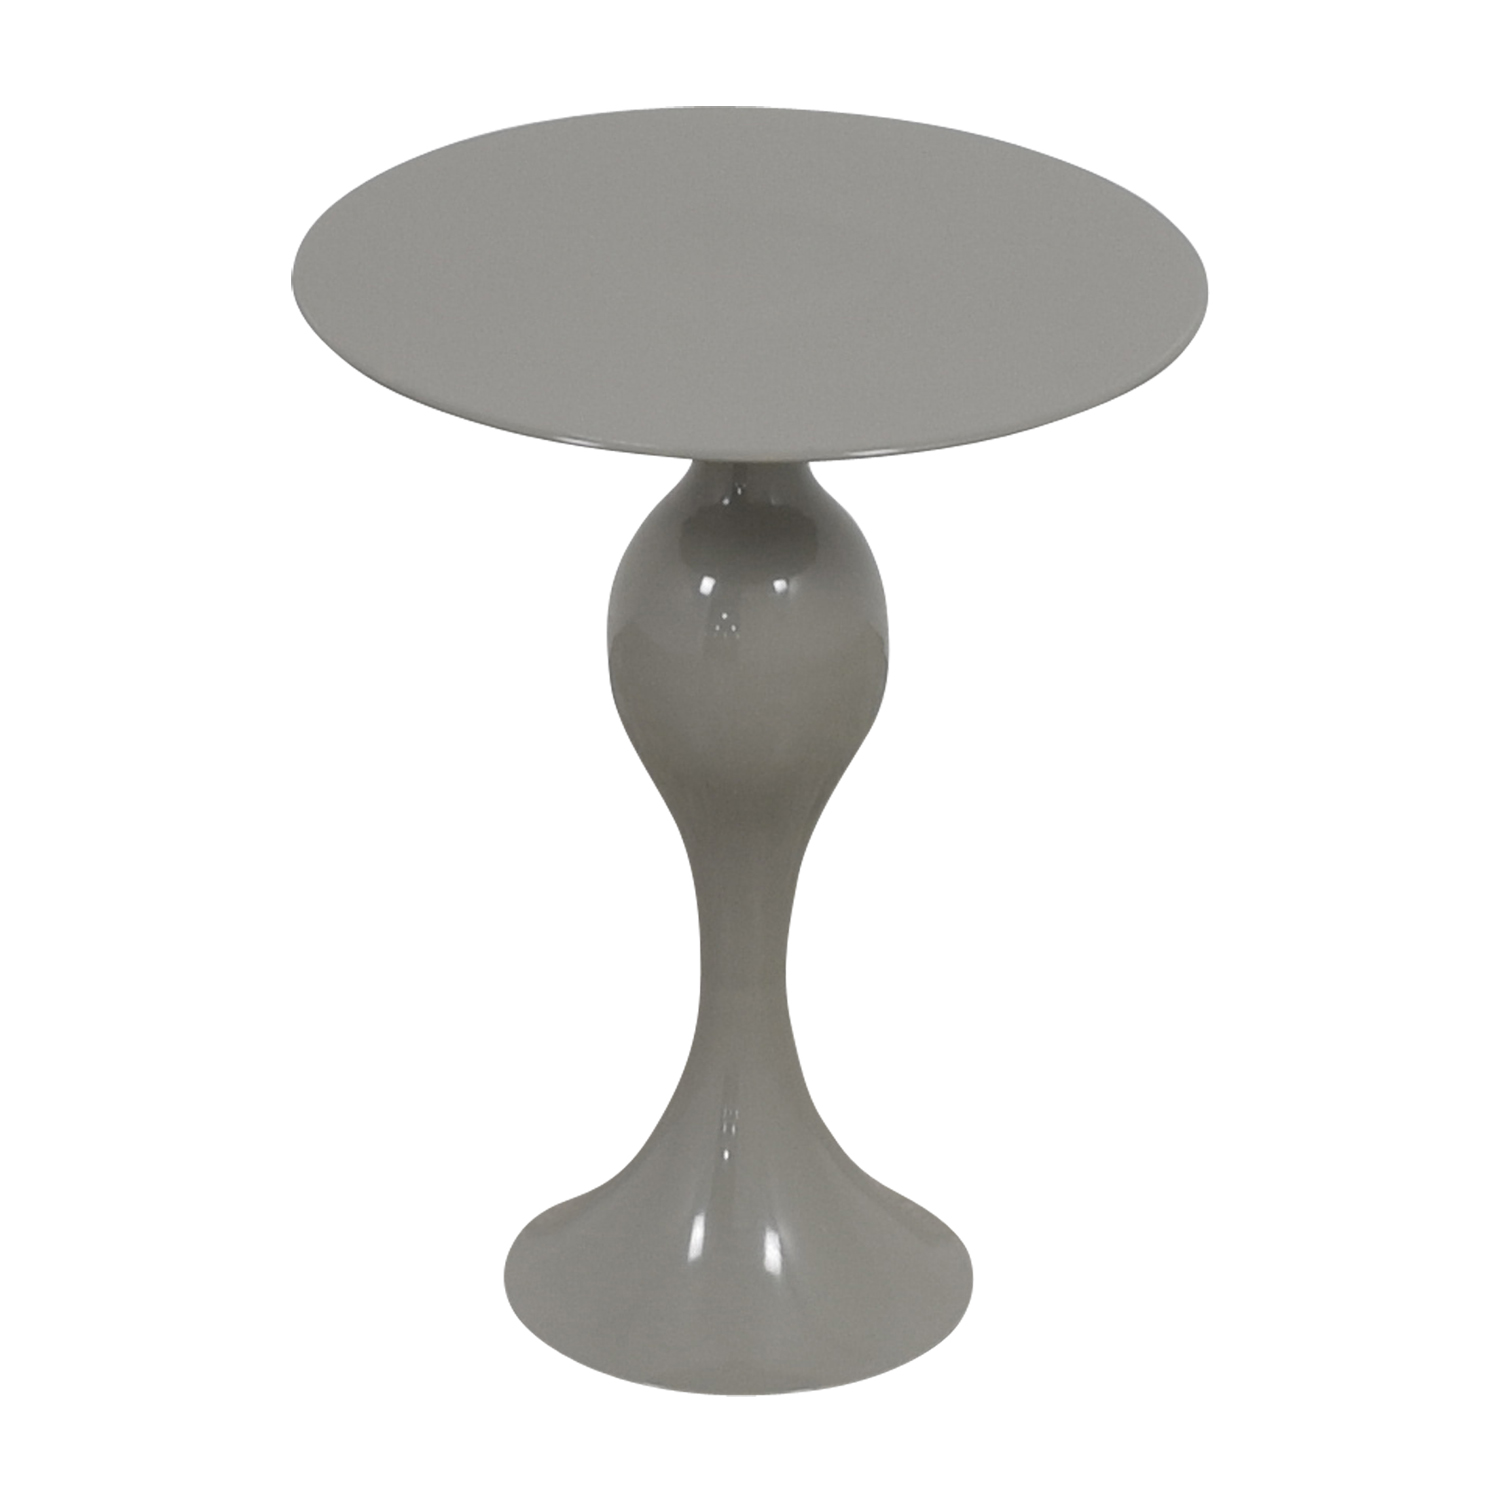 West Elm West Elm Gray Round End Table price